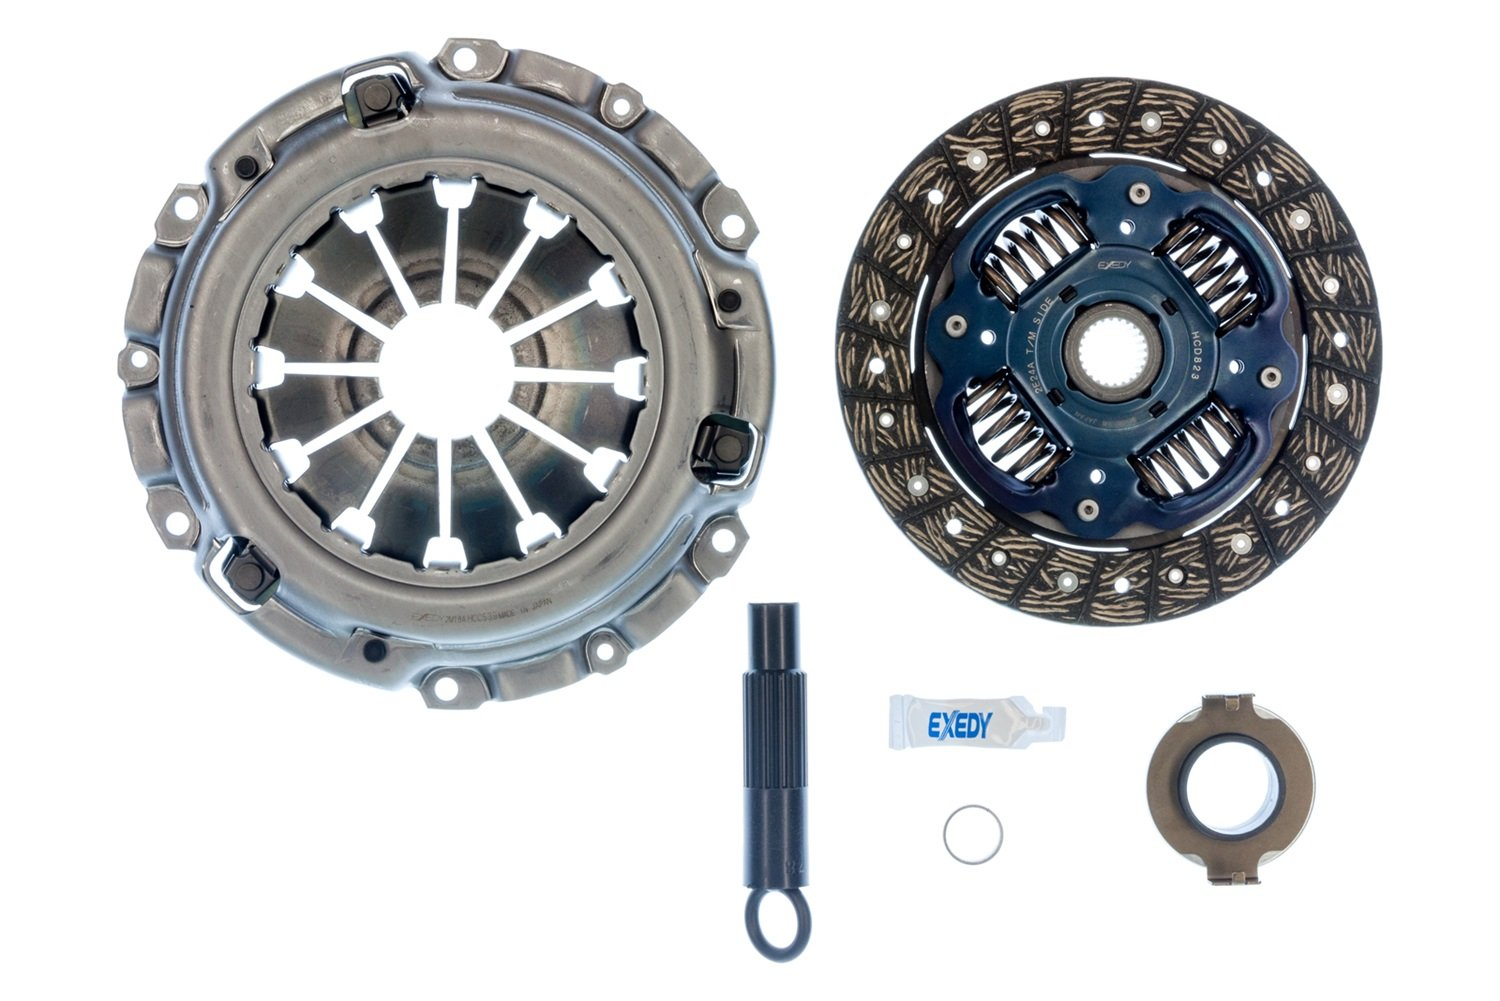 Amazon.com: EXEDY KHC10 OEM Replacement Clutch Kit For Acura RSX Type S  2002-2006 & Honda Civic SI 2006-2008 Only: Automotive